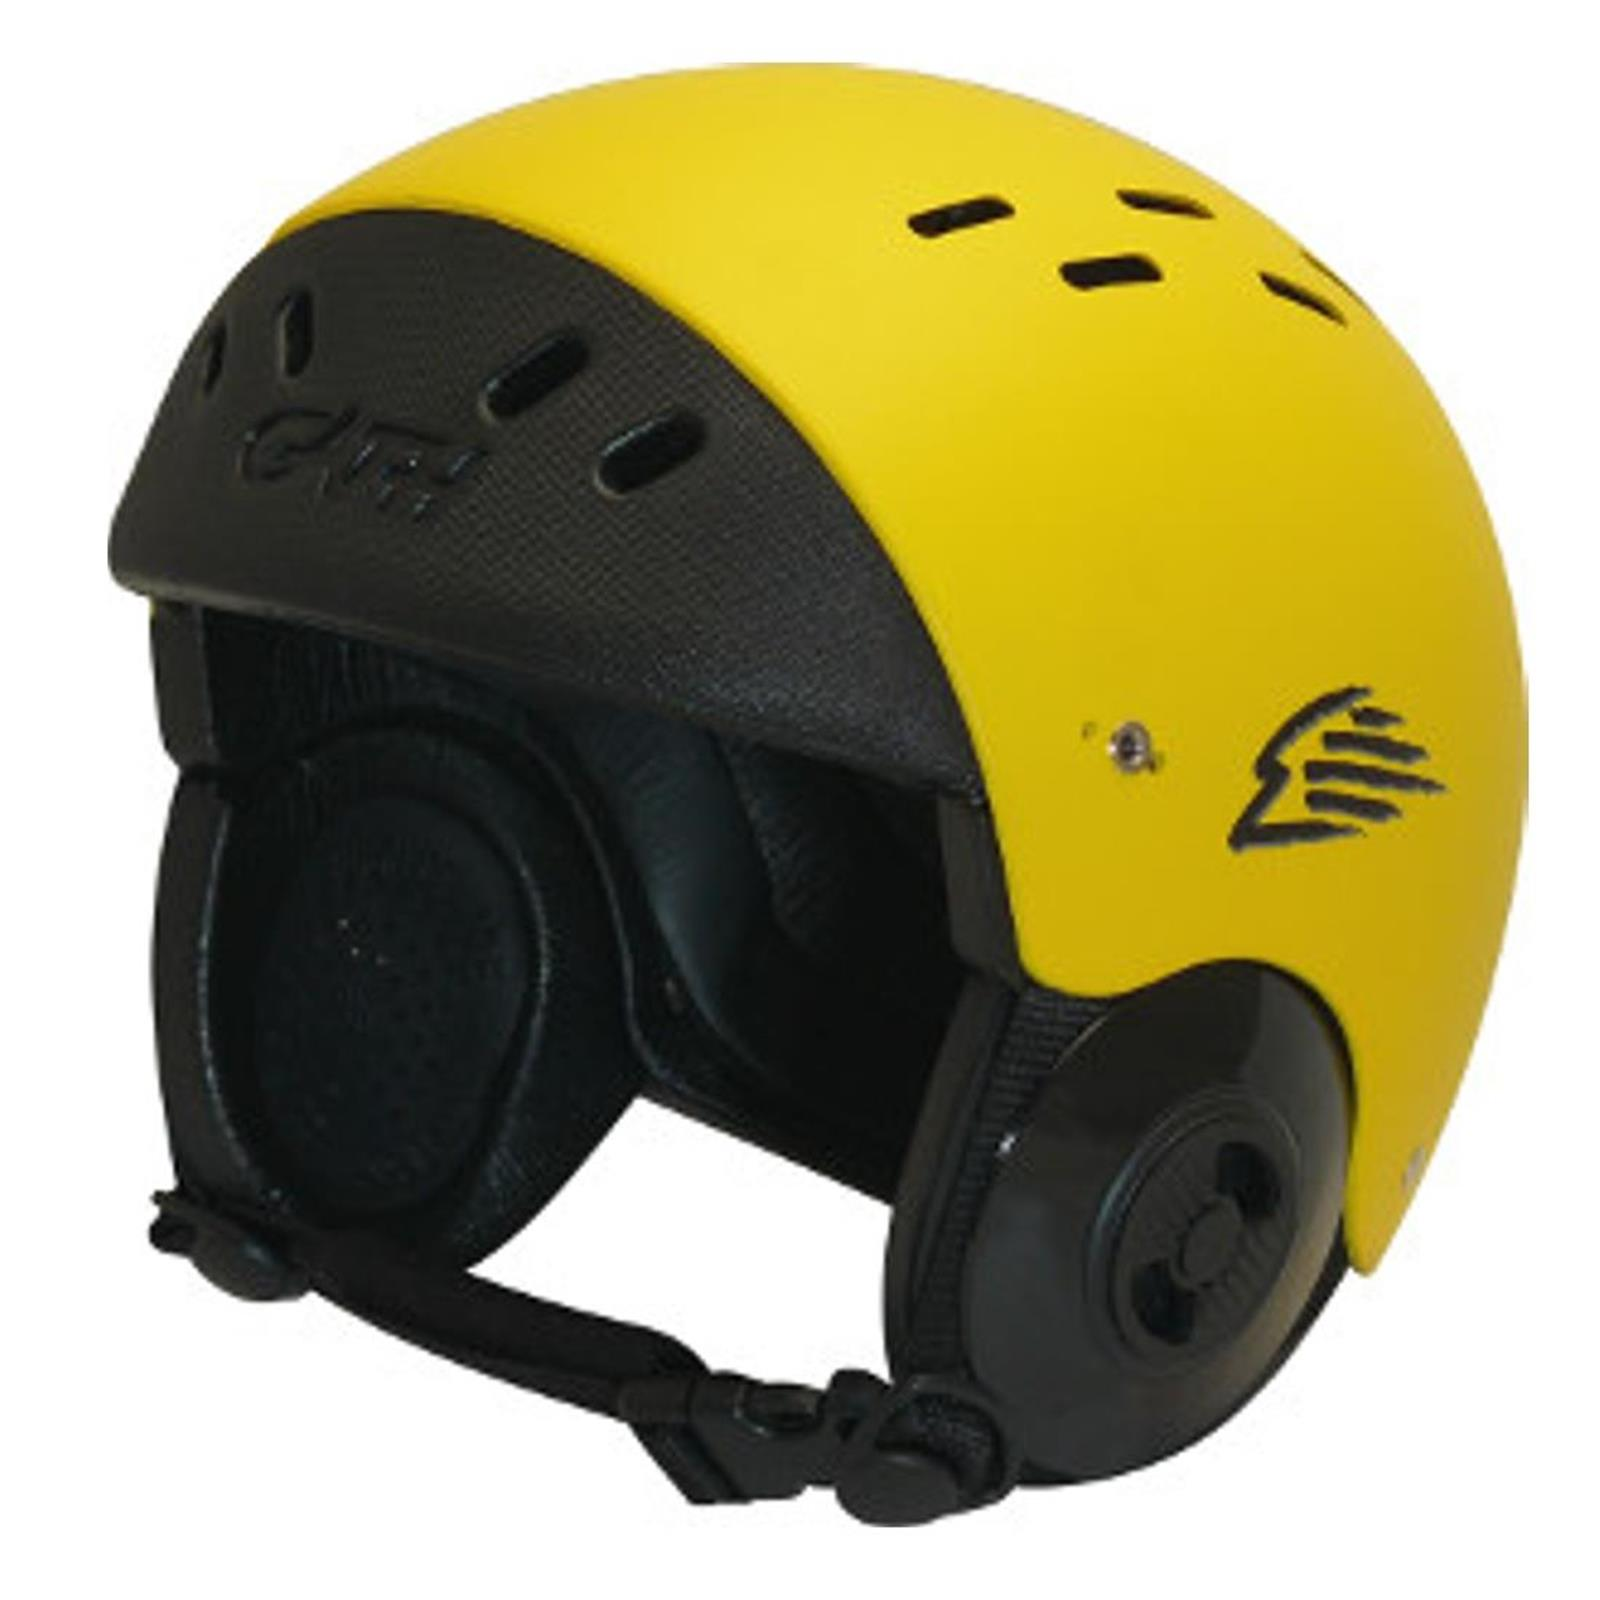 GATH Wassersport Helm SFC Convertible S Gelb matt